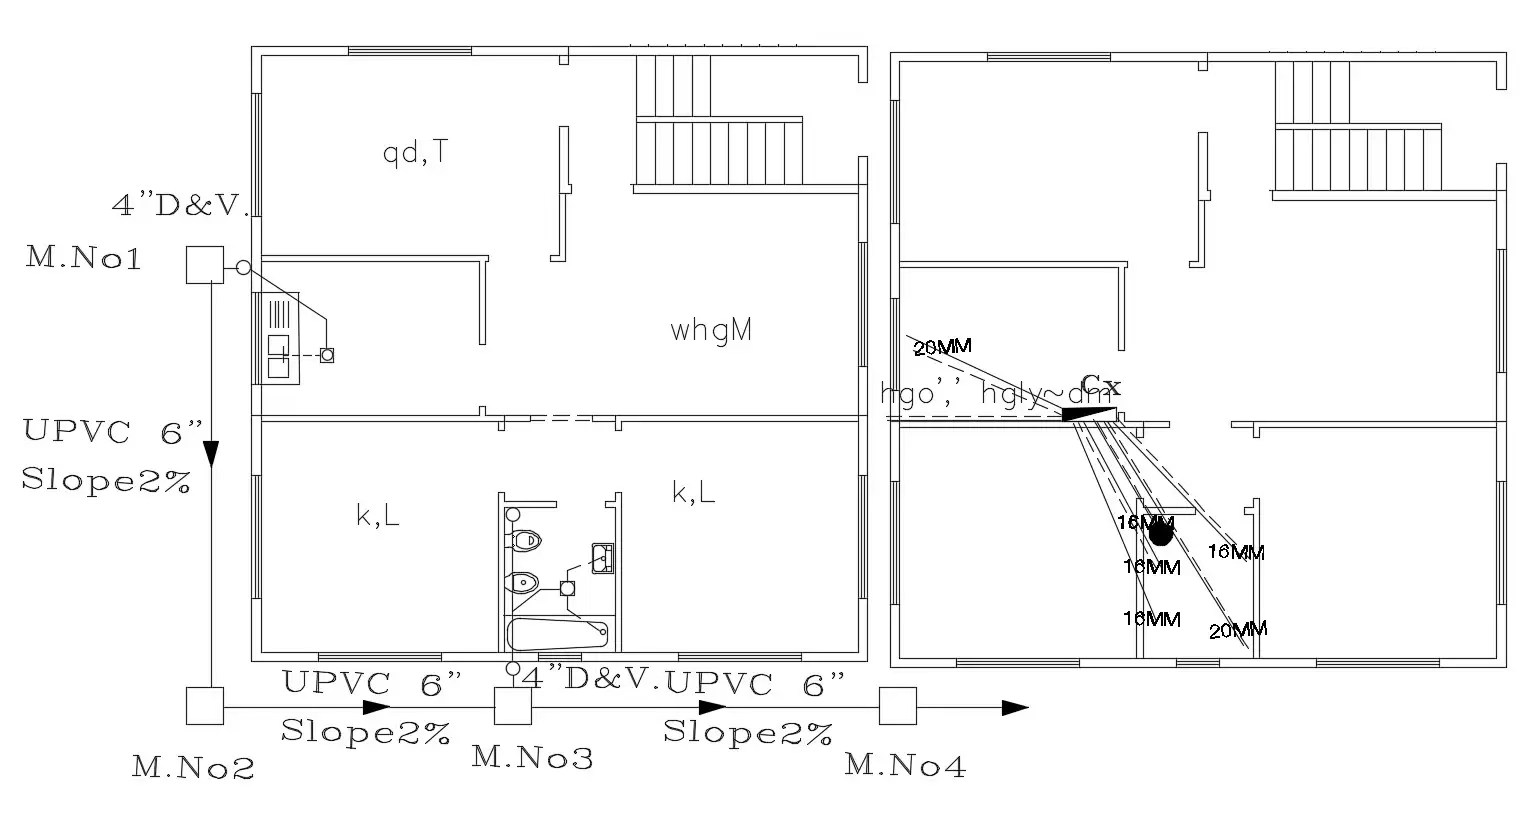 Electrical And Plumbing Layout Plan Cad File